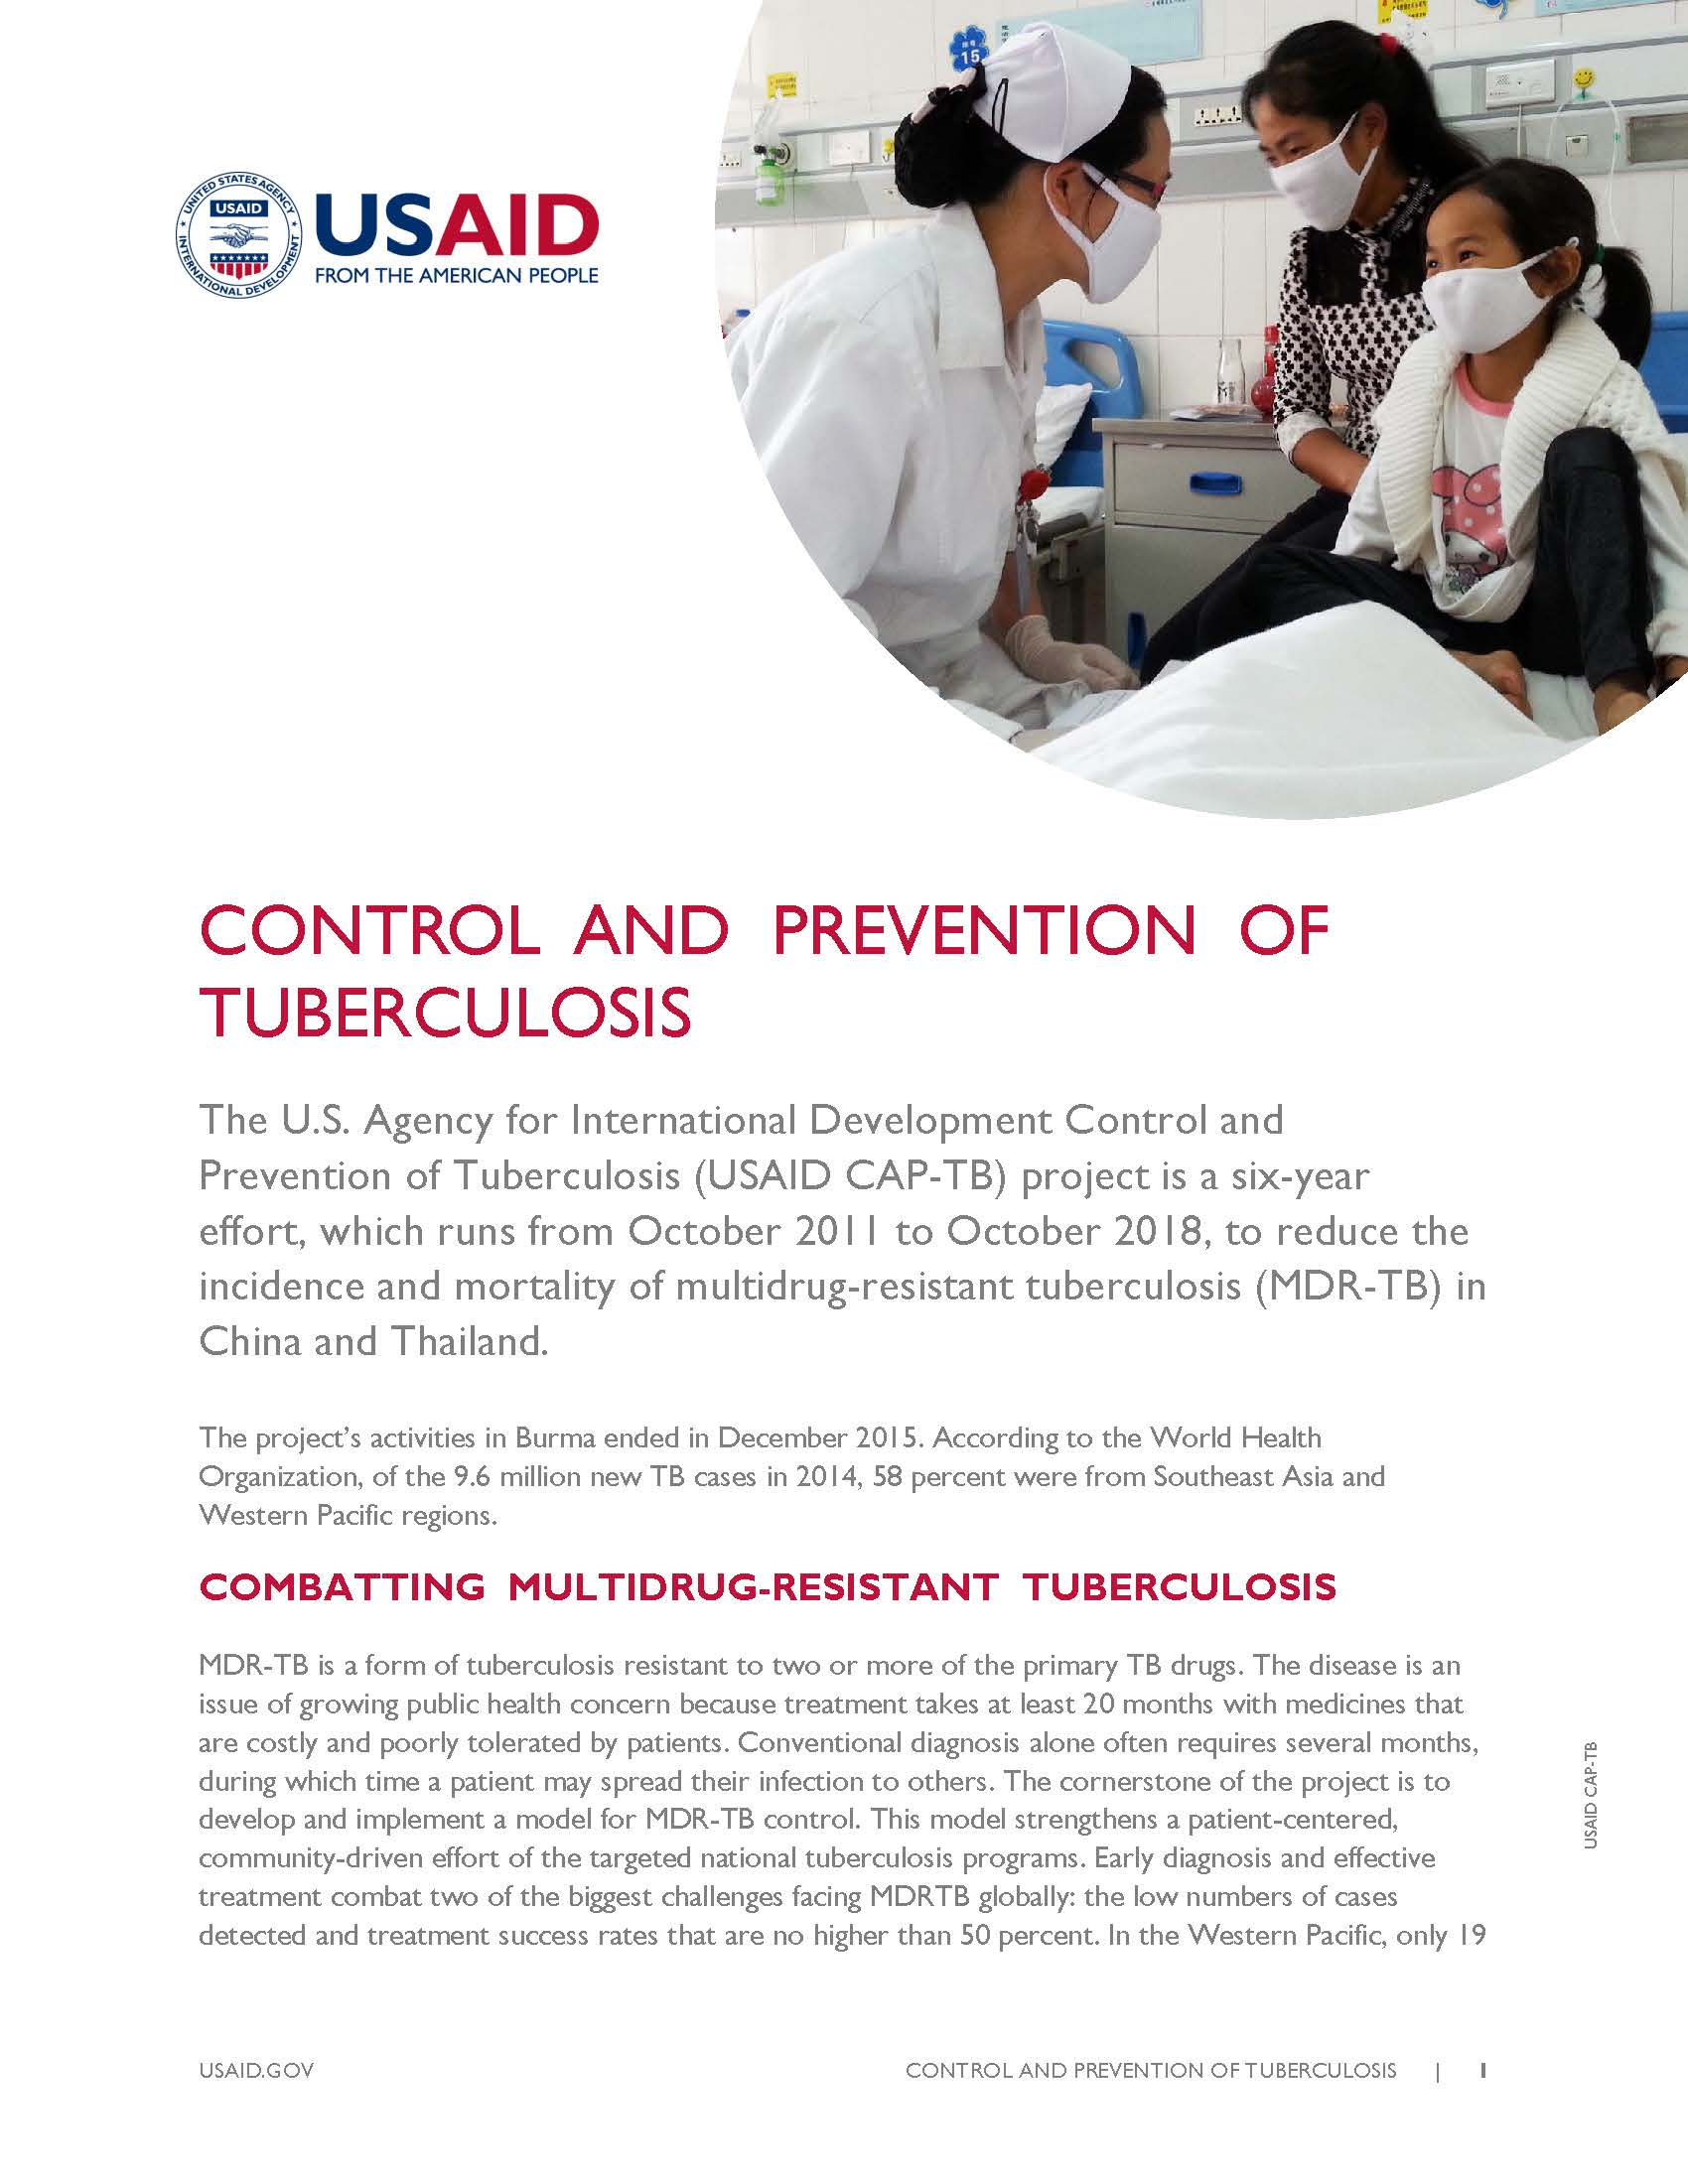 Control and Prevention of Tuberculosis Project